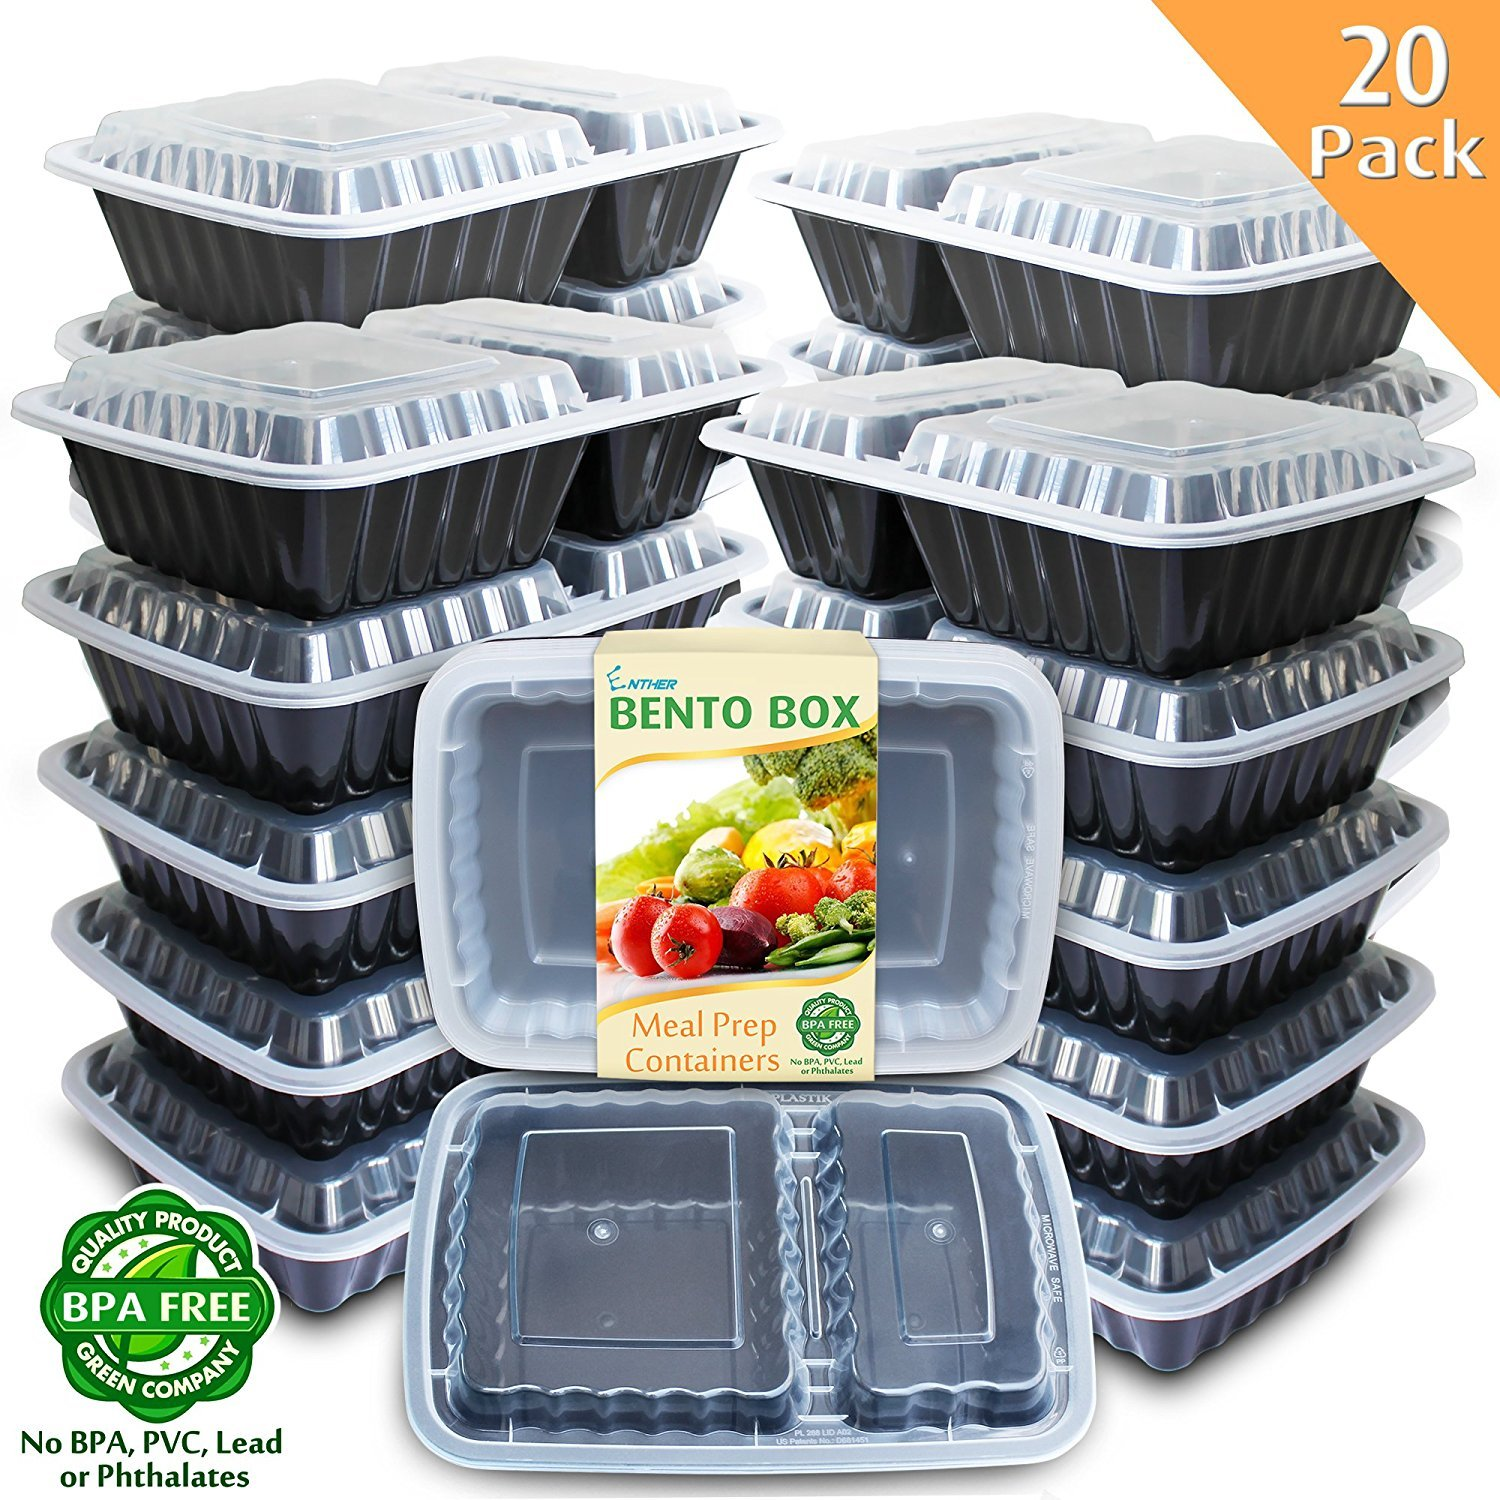 Enther Meal Prep Containers [20 Pack] 2 Compartment with Lids, Food Storage Bento Box | BPA Free | Stackable | Reusable Lunch Boxes, Microwave/Dishwasher/Freezer Safe,Portion Control (32 oz)